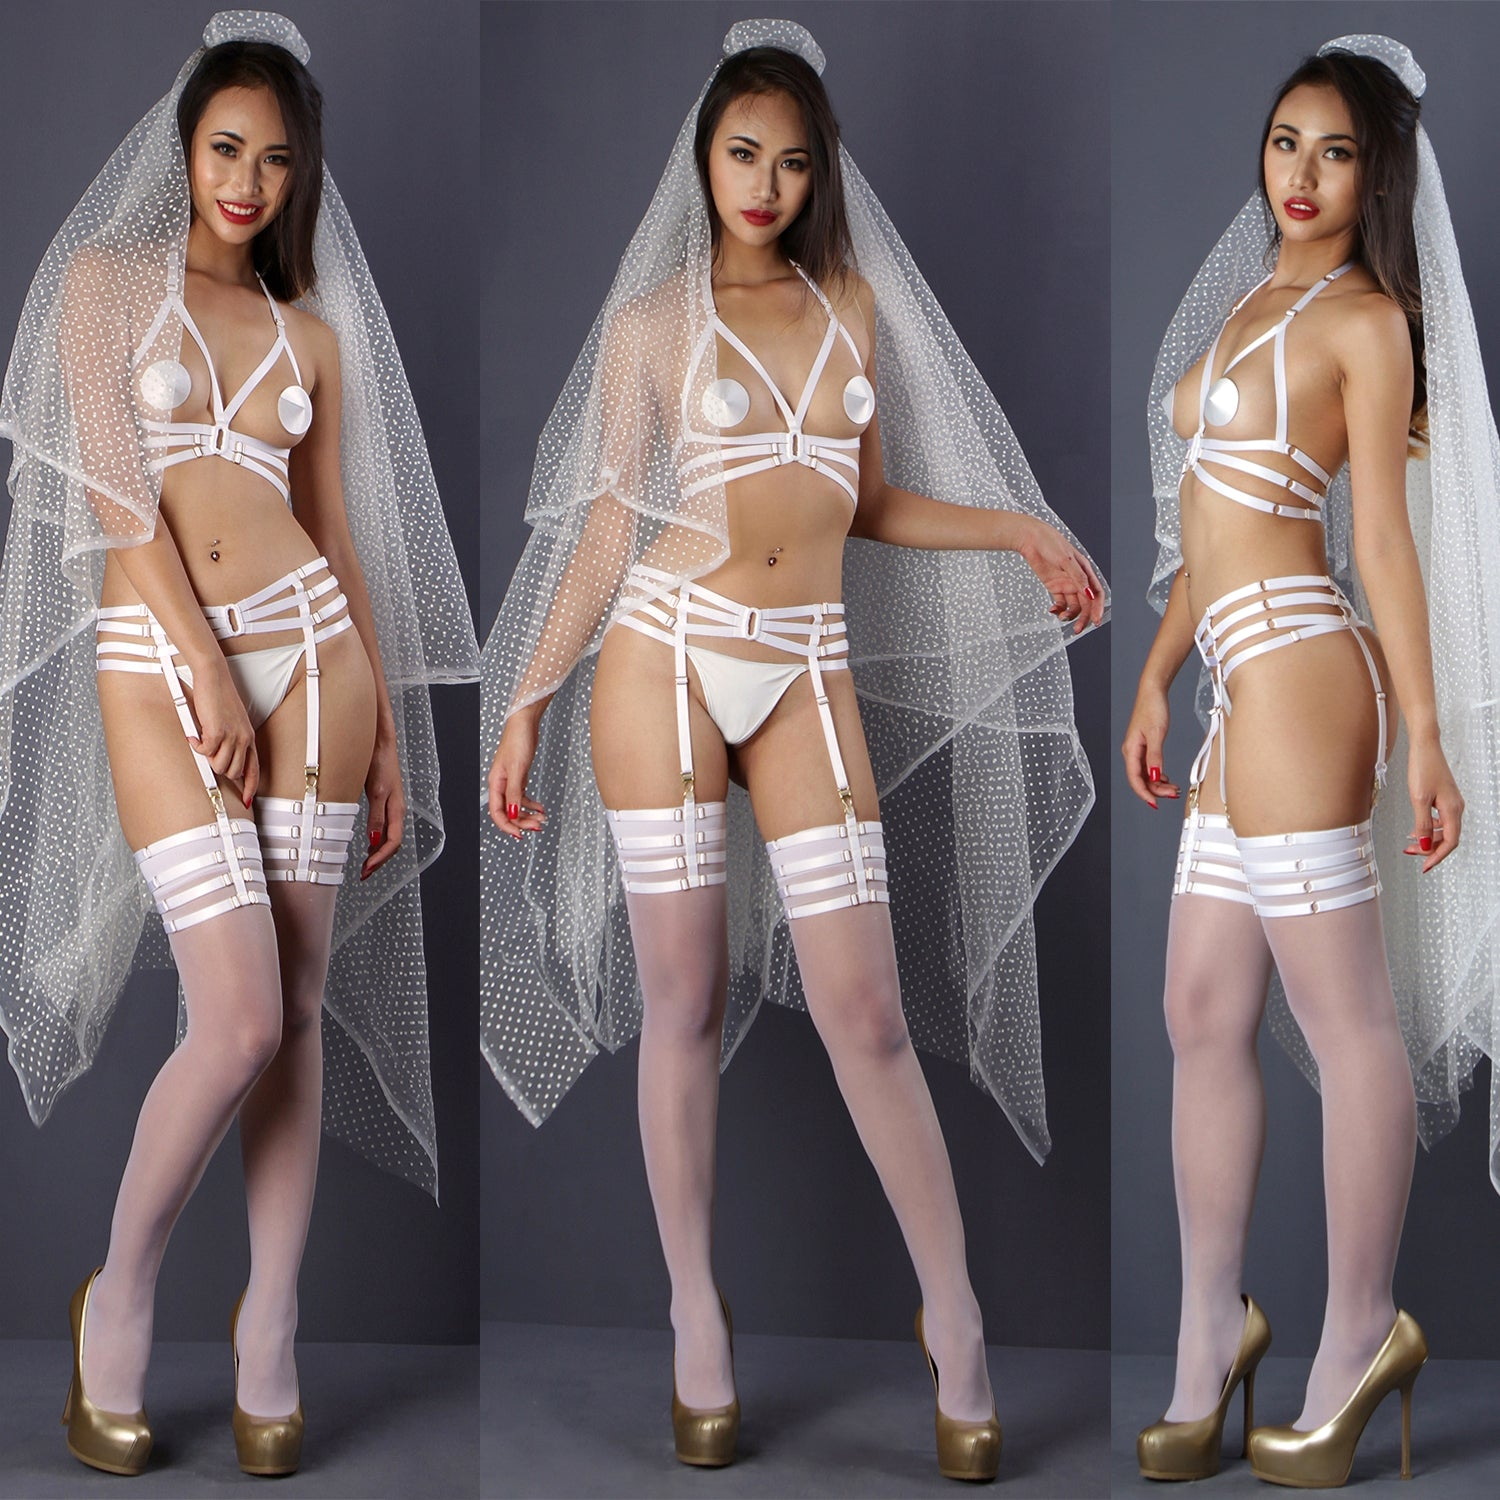 White harness suspender belt, Bridal strappy suspender, bridal lingerie, harness belt, body harness by Ange Dechu - Ange Déchu